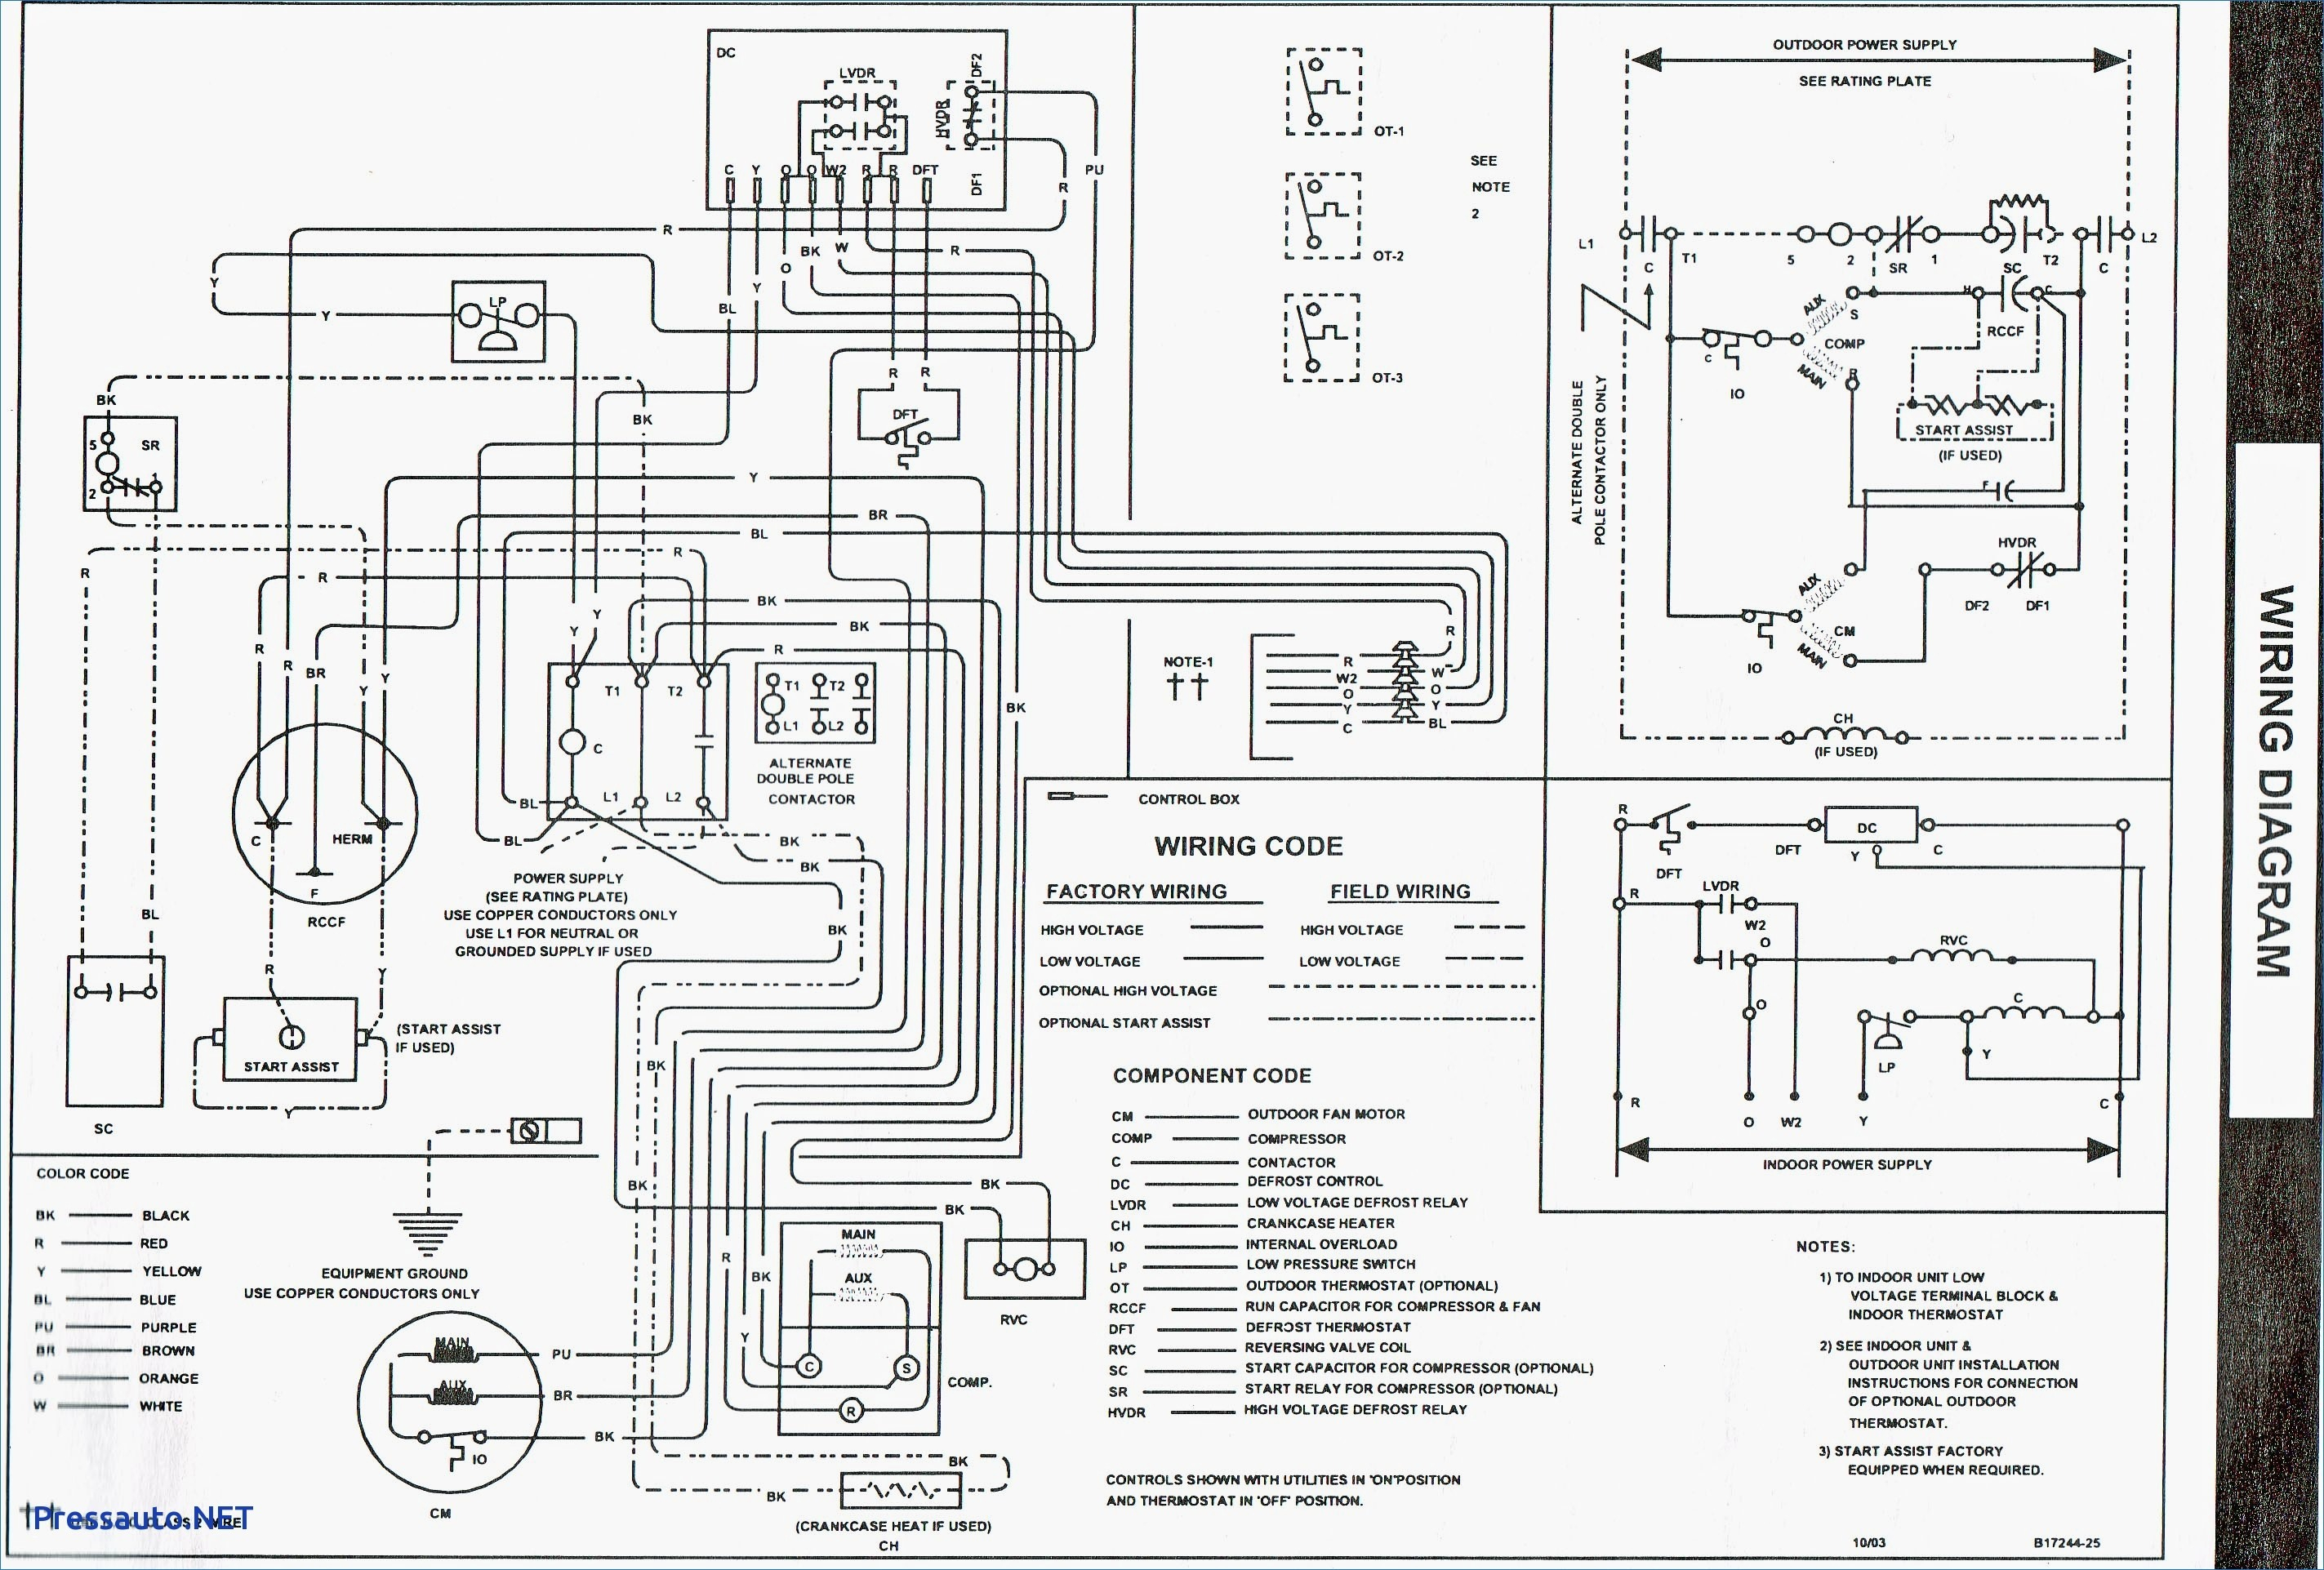 Mini Split Wiring Diagram Free Download Wiring Diagram Schematic